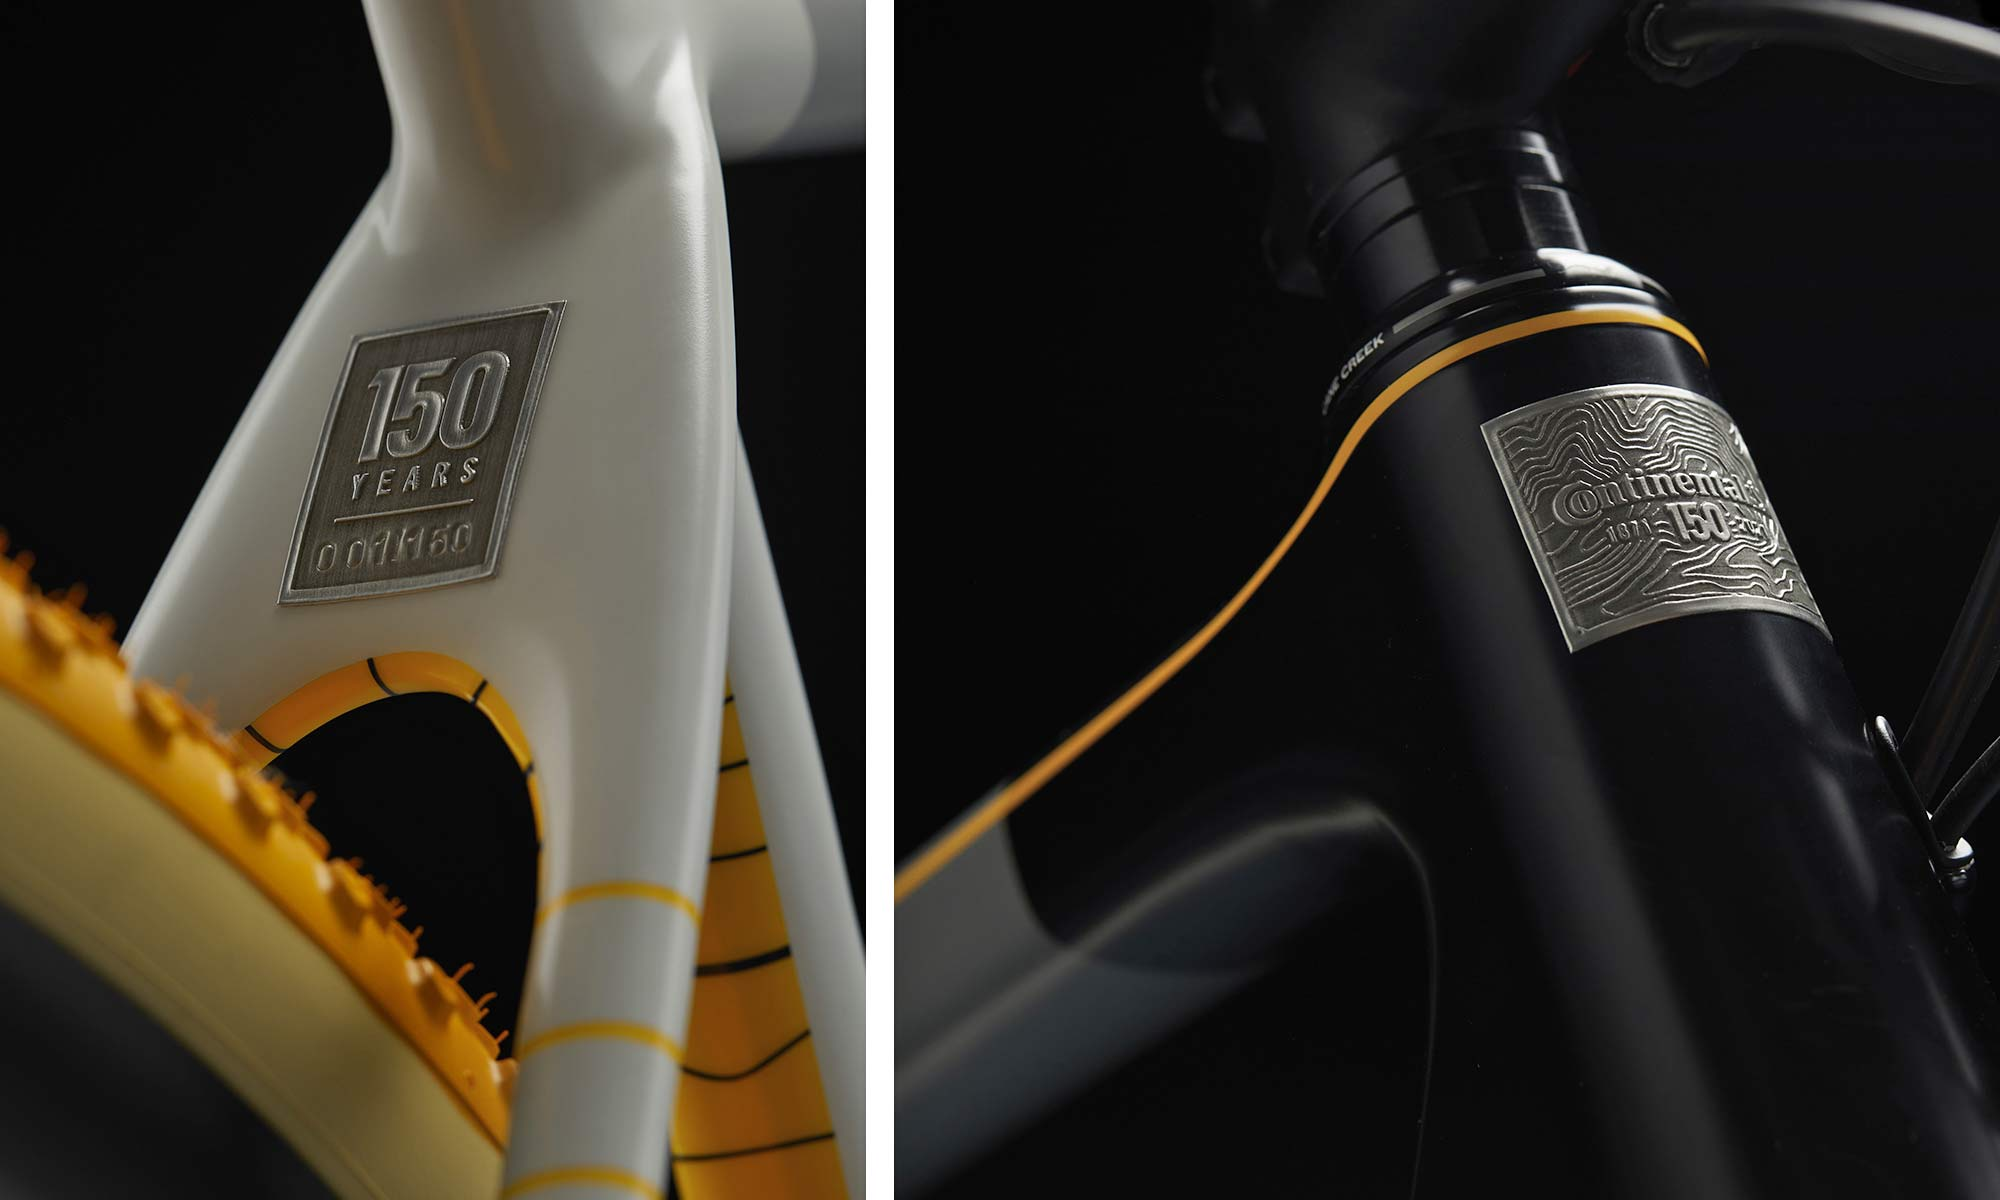 Continental 150th limited edition Terra Trail tires on a OPEN UP gravel bike, details